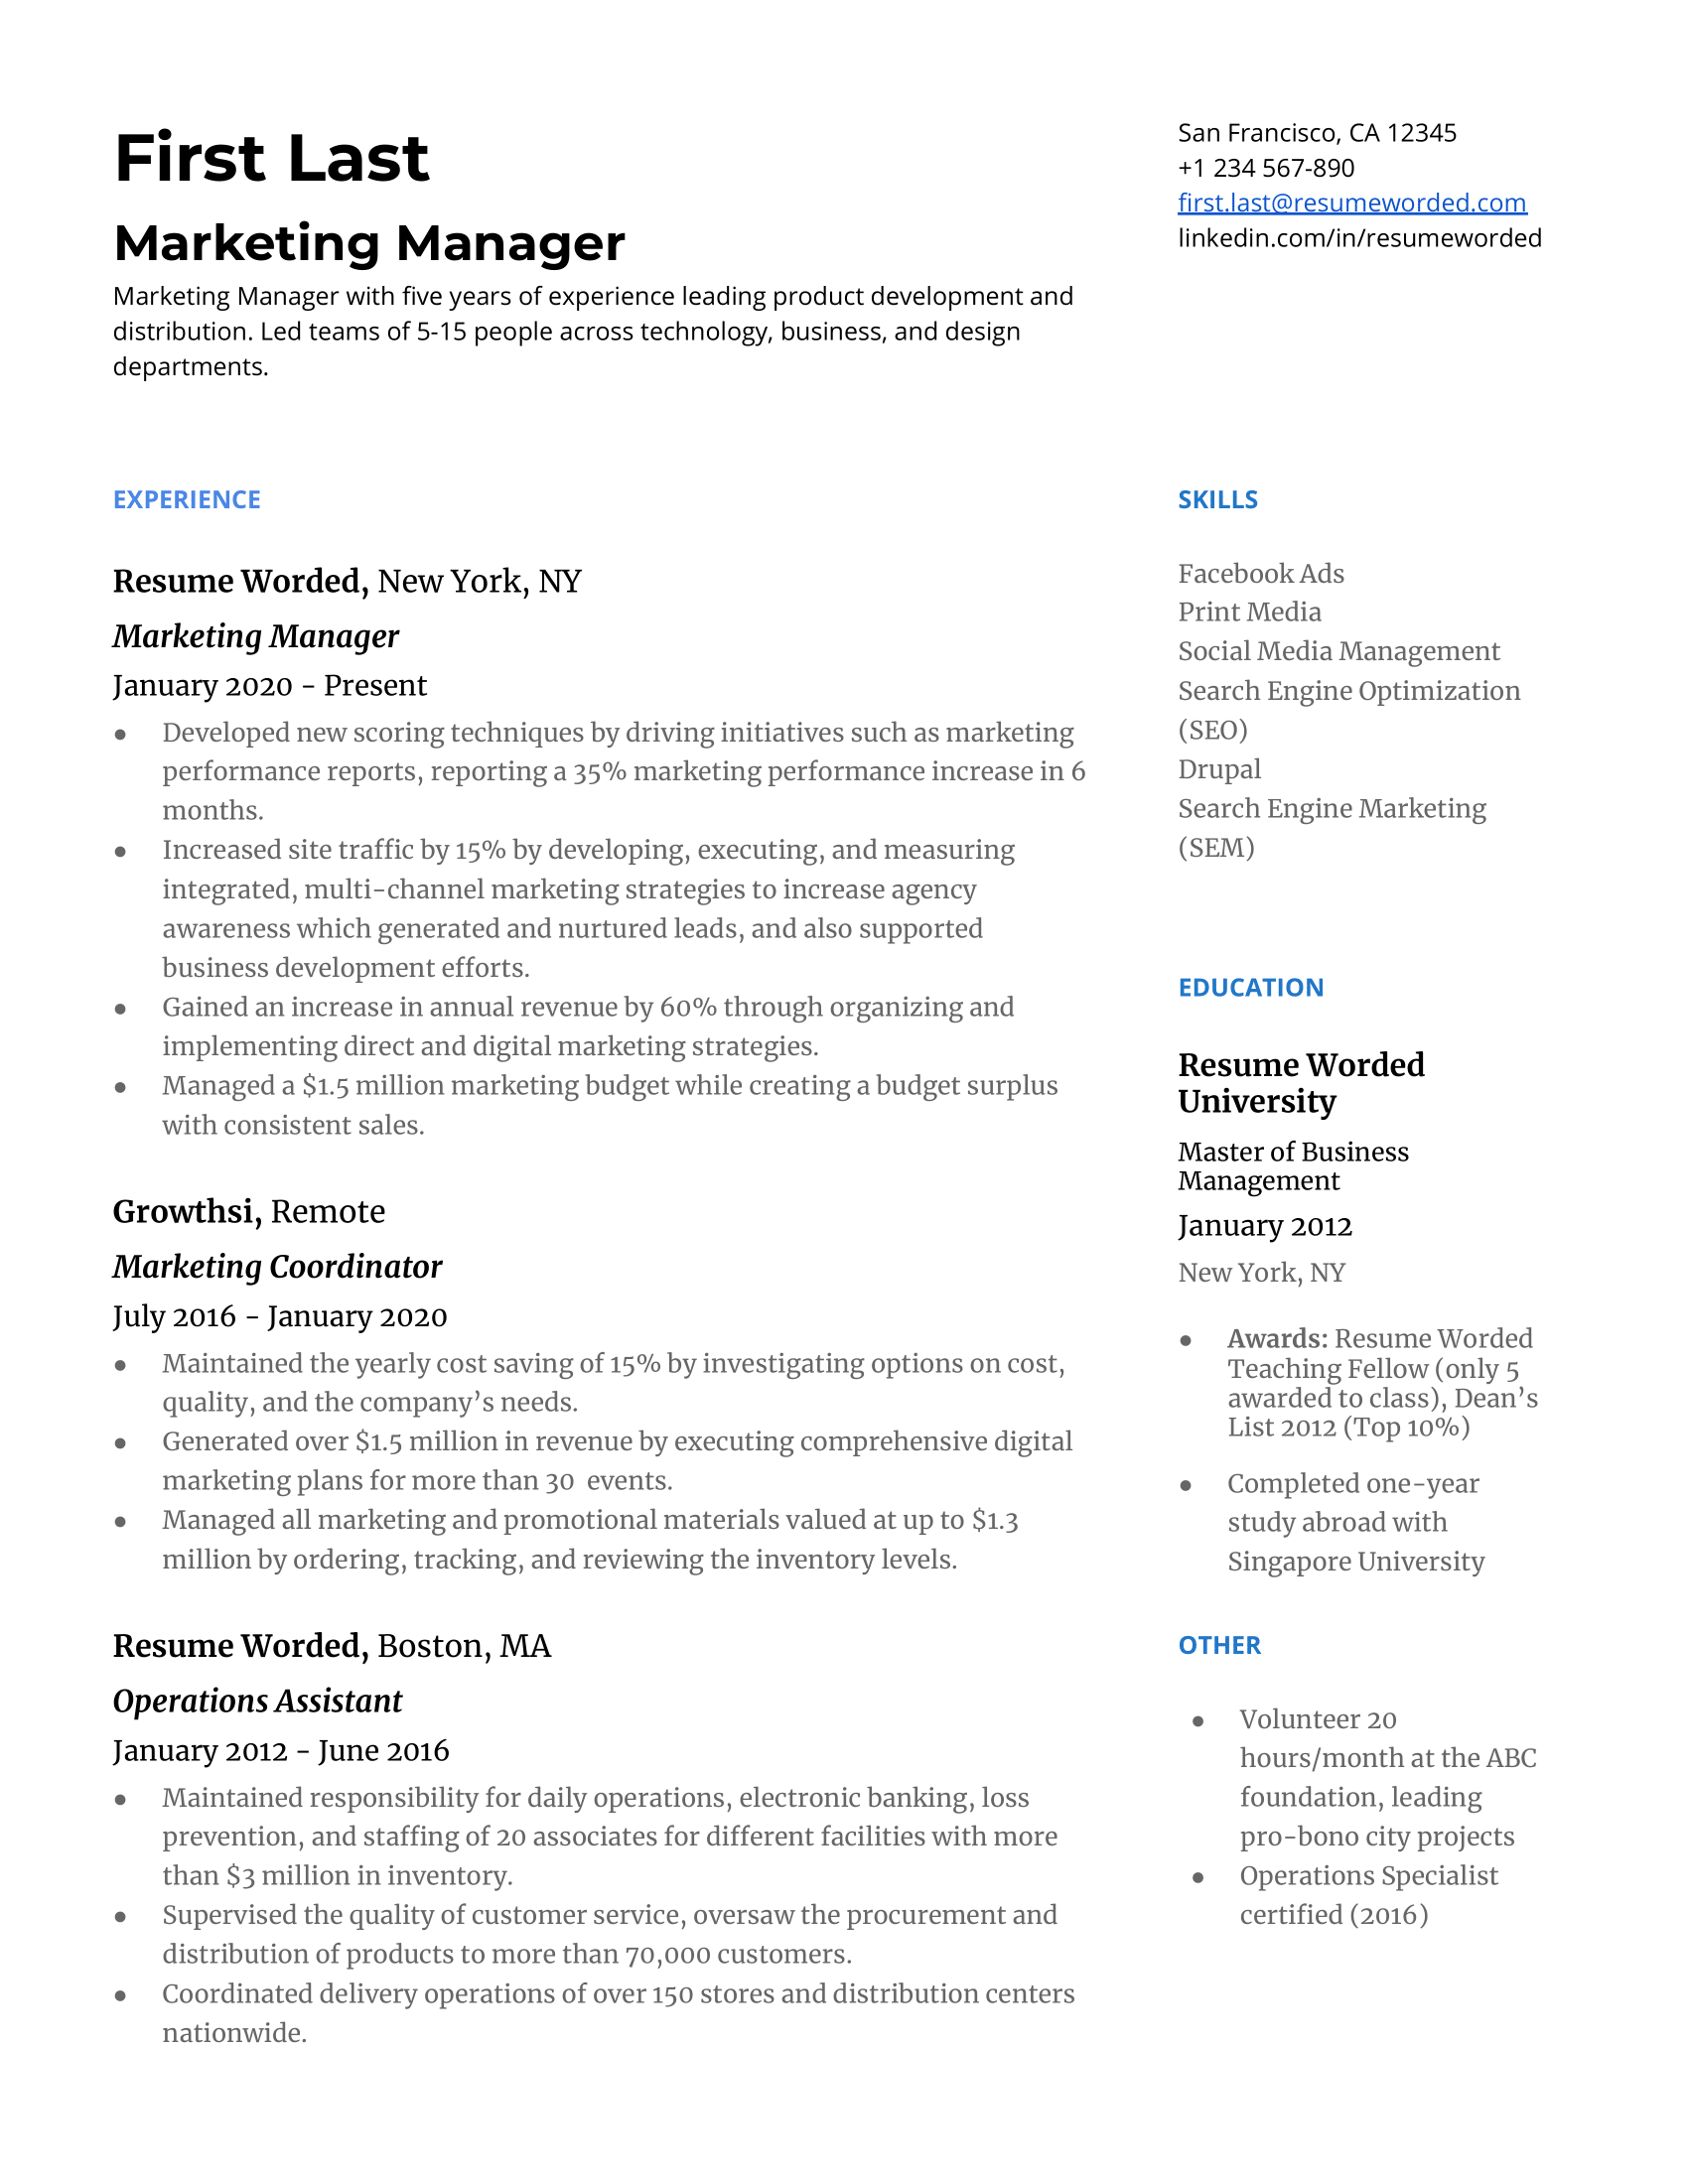 Marketing manager resume manual writers term papers